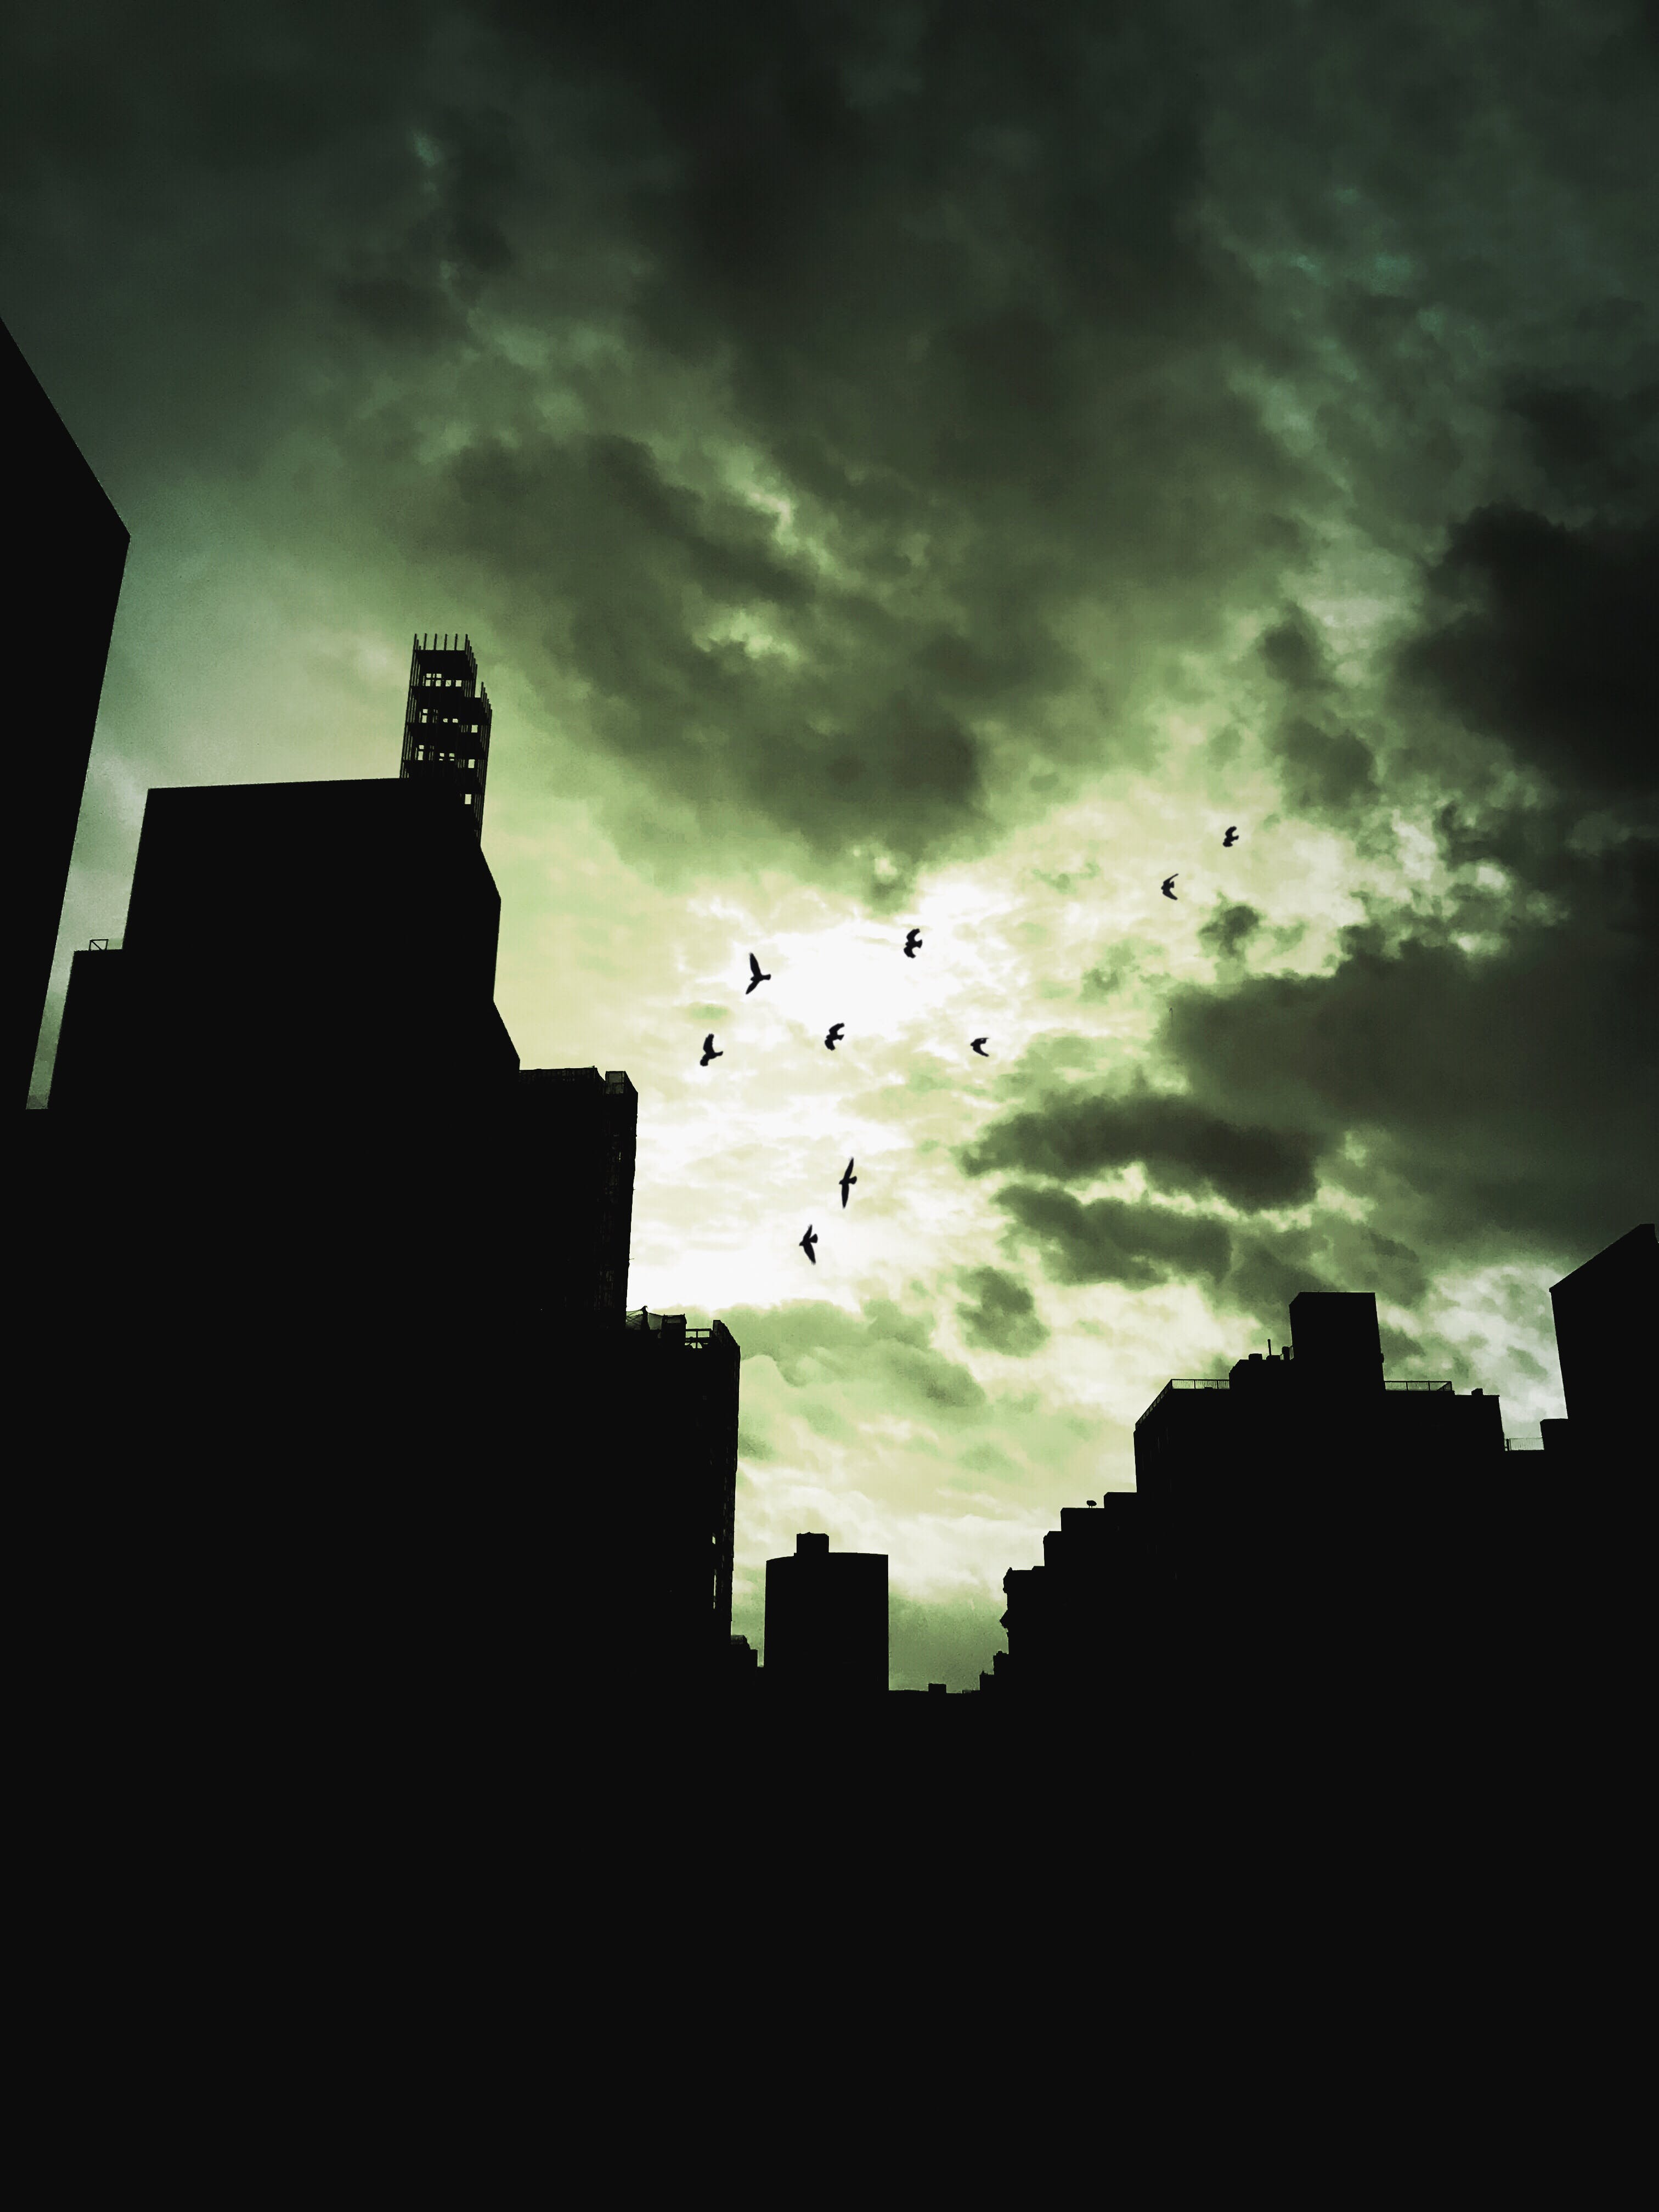 Silhouette Photography of City Buildings and Birds Flying